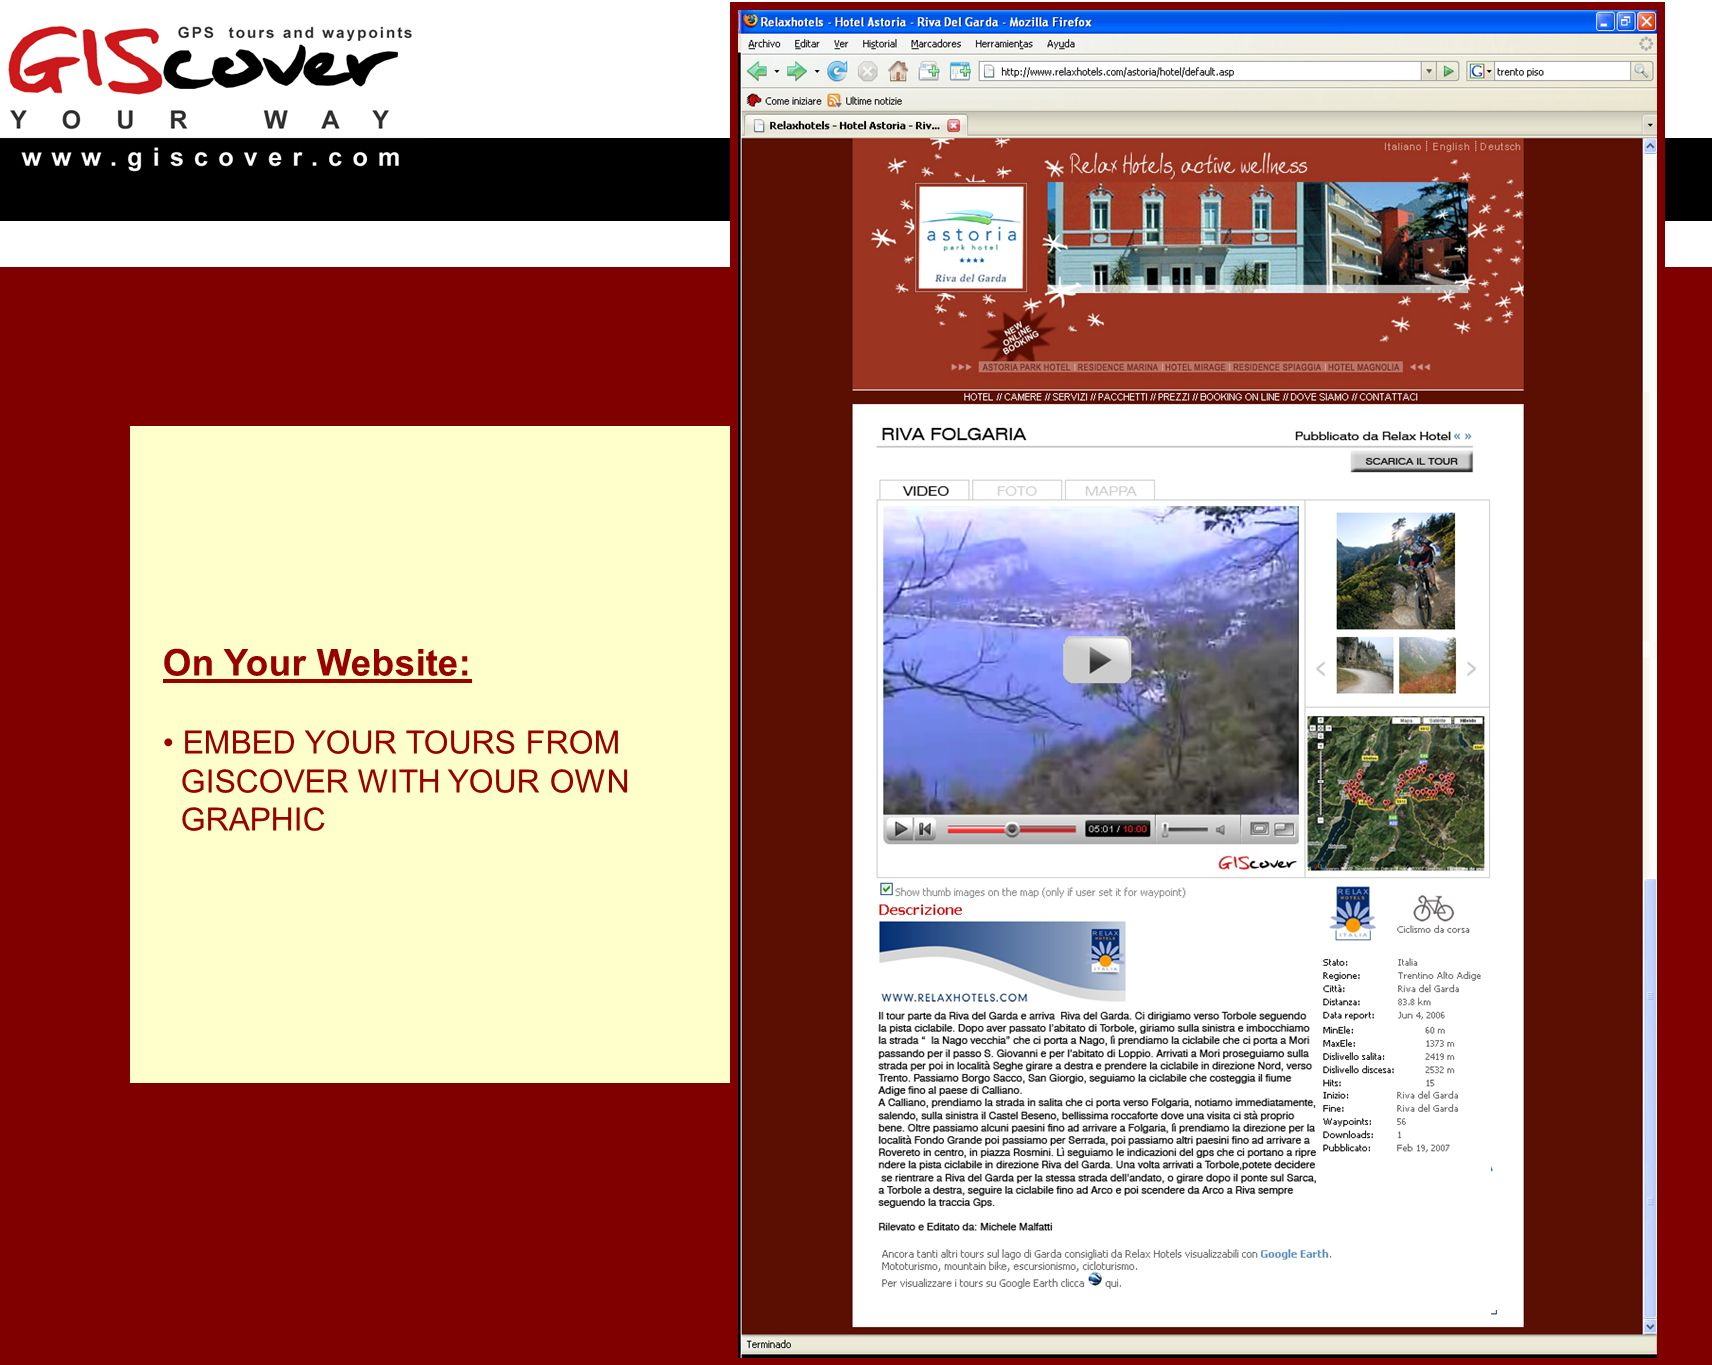 On Your Website: EMBED YOUR TOURS FROM GISCOVER WITH YOUR OWN GRAPHIC